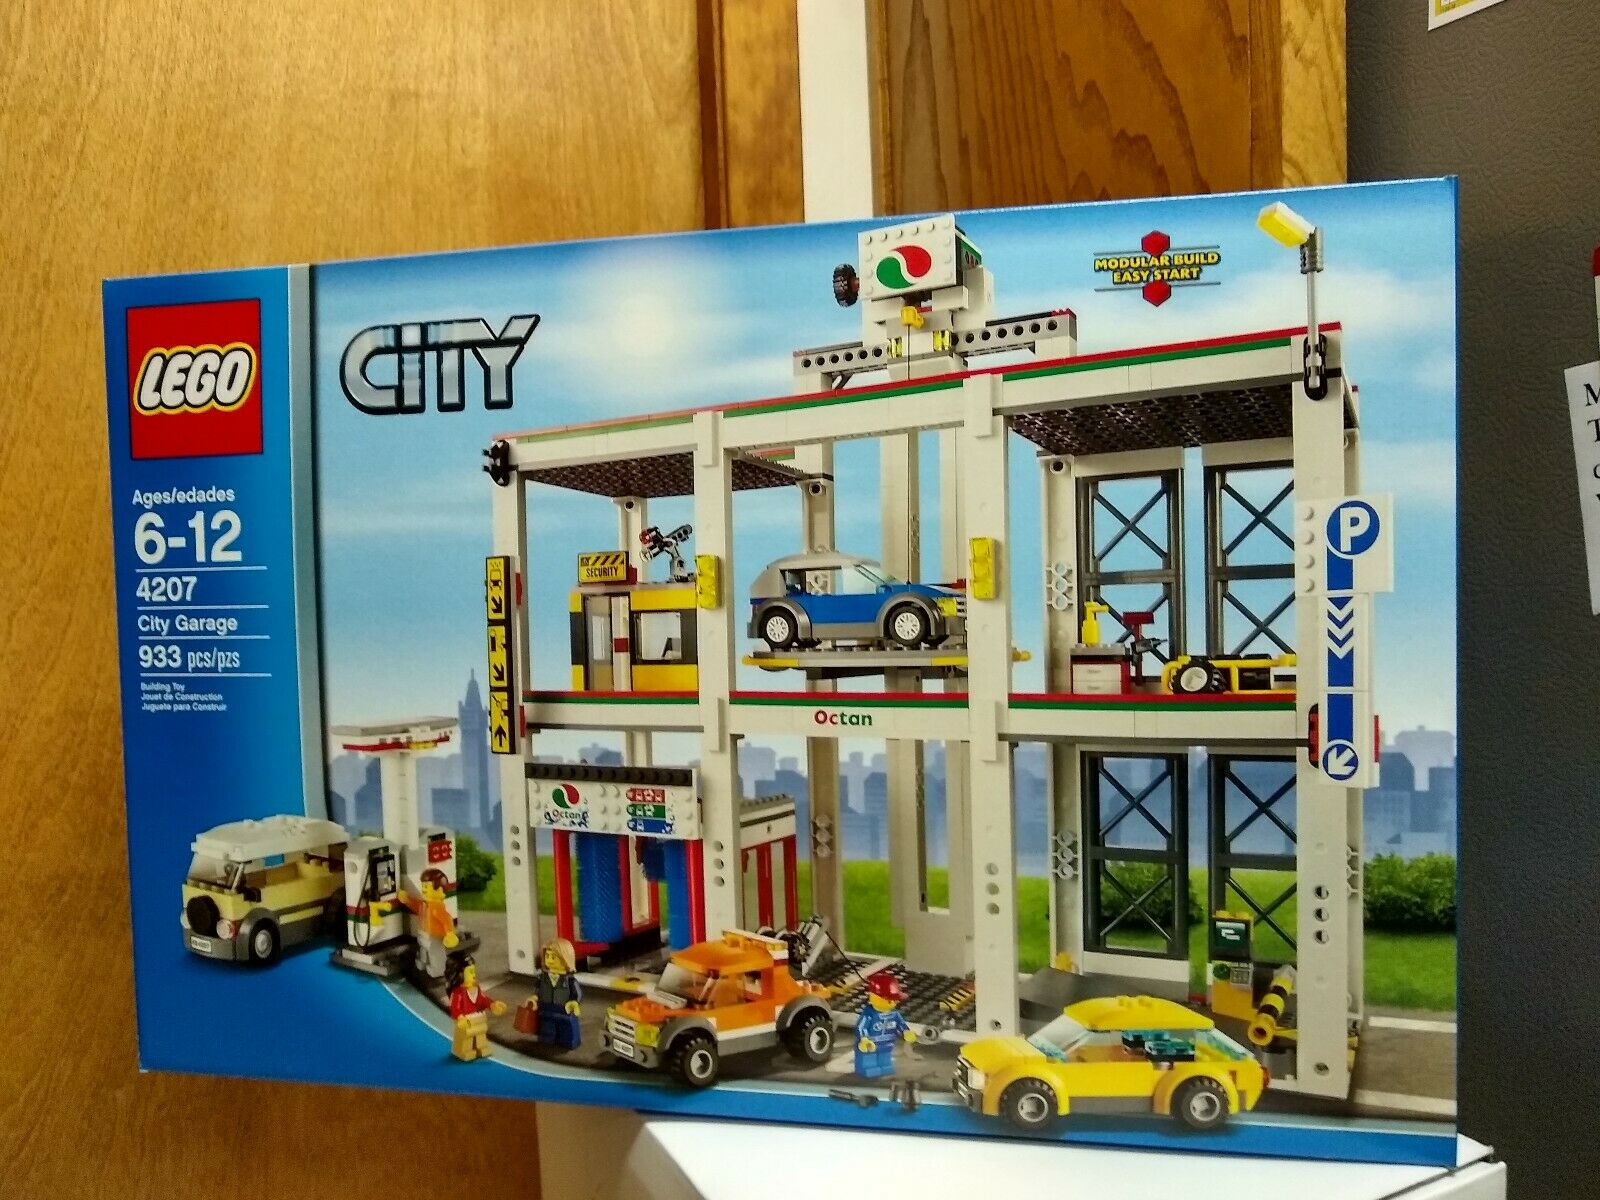 NEW LEGO 4207 CITY GARAGE GARAGE GARAGE BUILDING cb3757